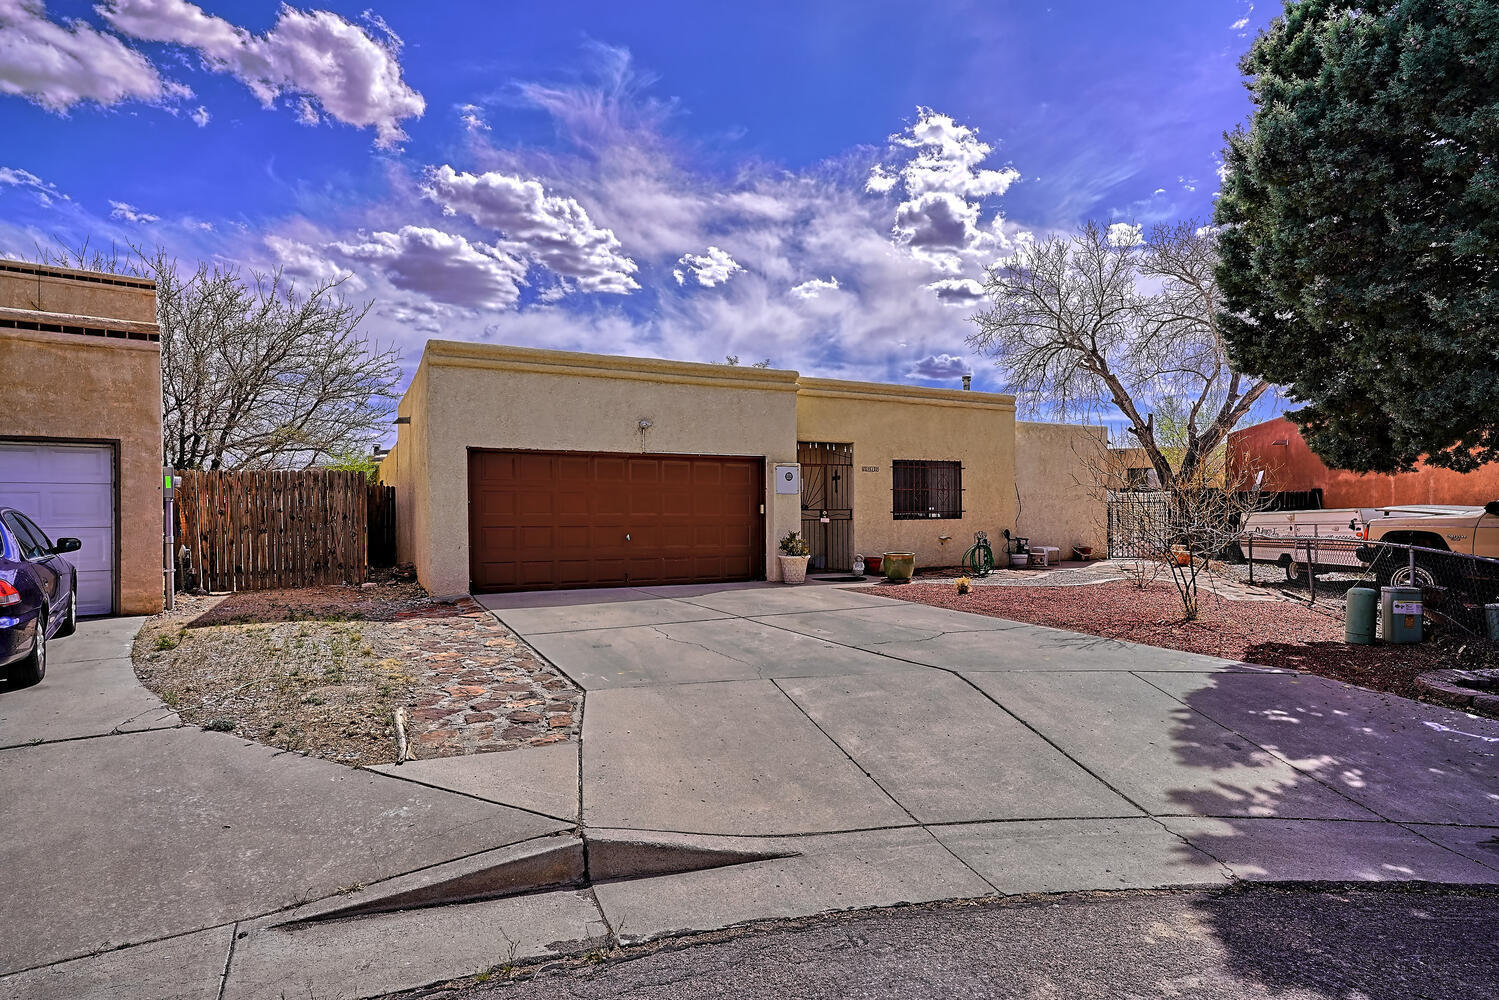 Great west side home featuring a HUGE living area, formal dining room, sitting room and bar area great for family gatherings or entertaining.  Back yard patio great for relaxing in the evenings. Quick access to I40 via Unser or Coors.